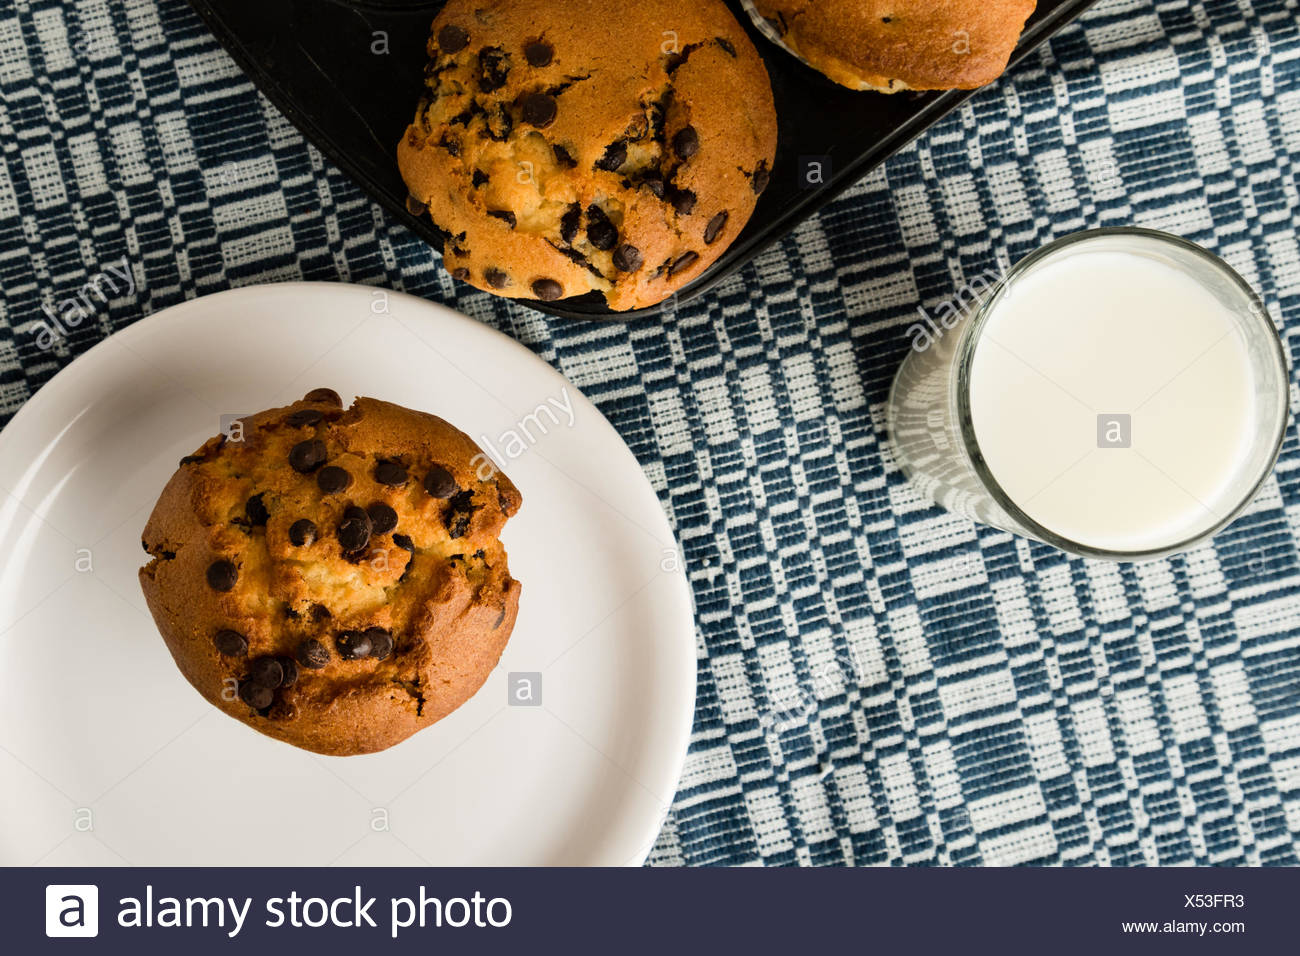 freshly baked chocolate chip muffins - Stock Image